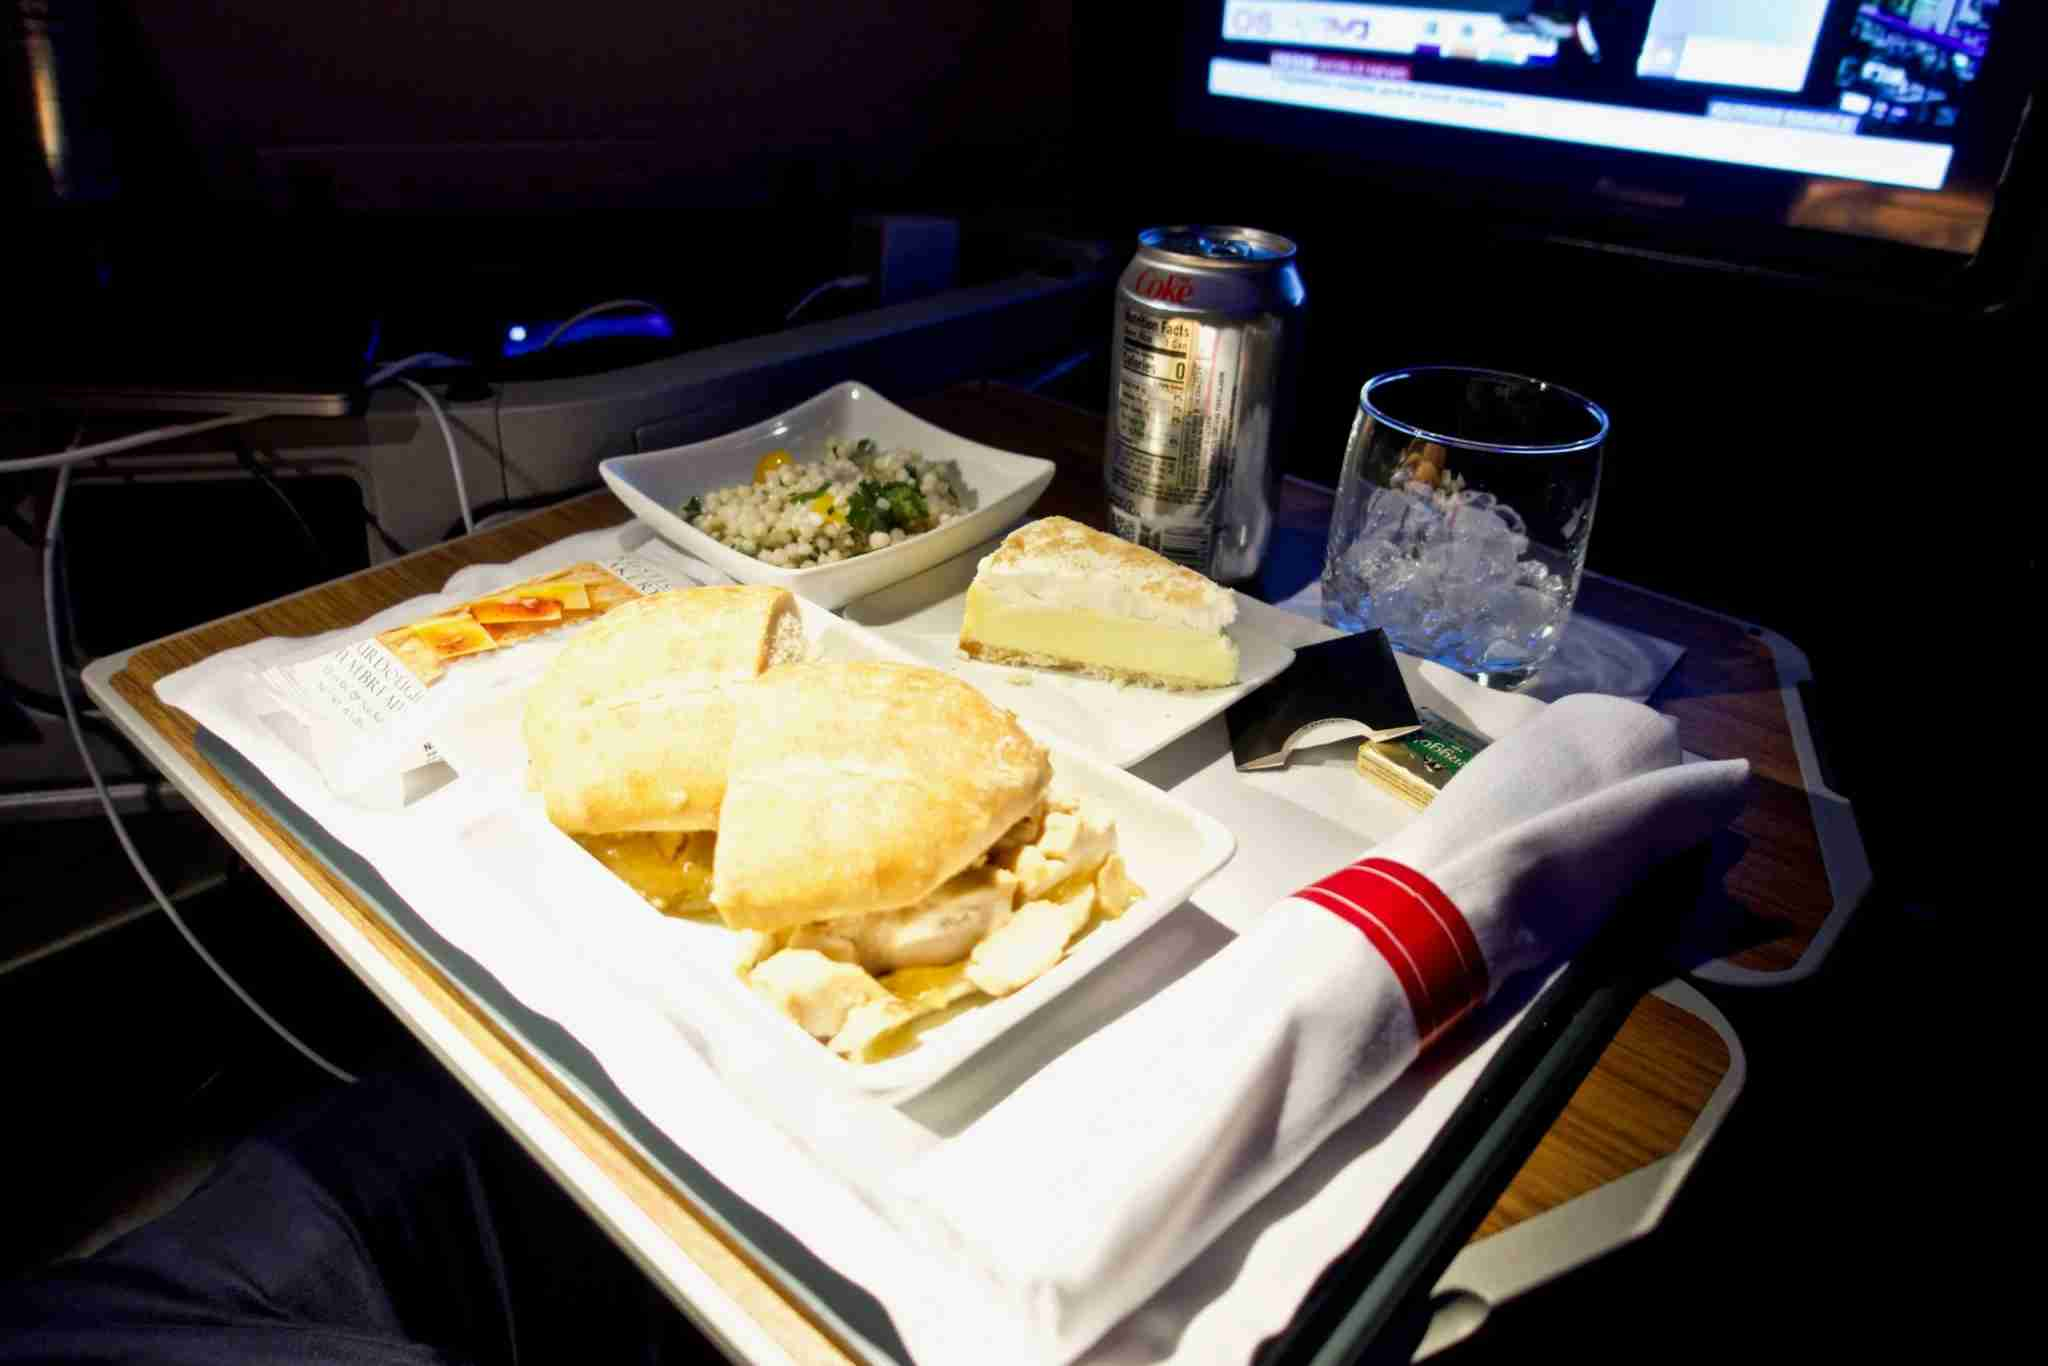 American Airlines B777-200 business class. Photo by Christian Kramer / The Points Guy